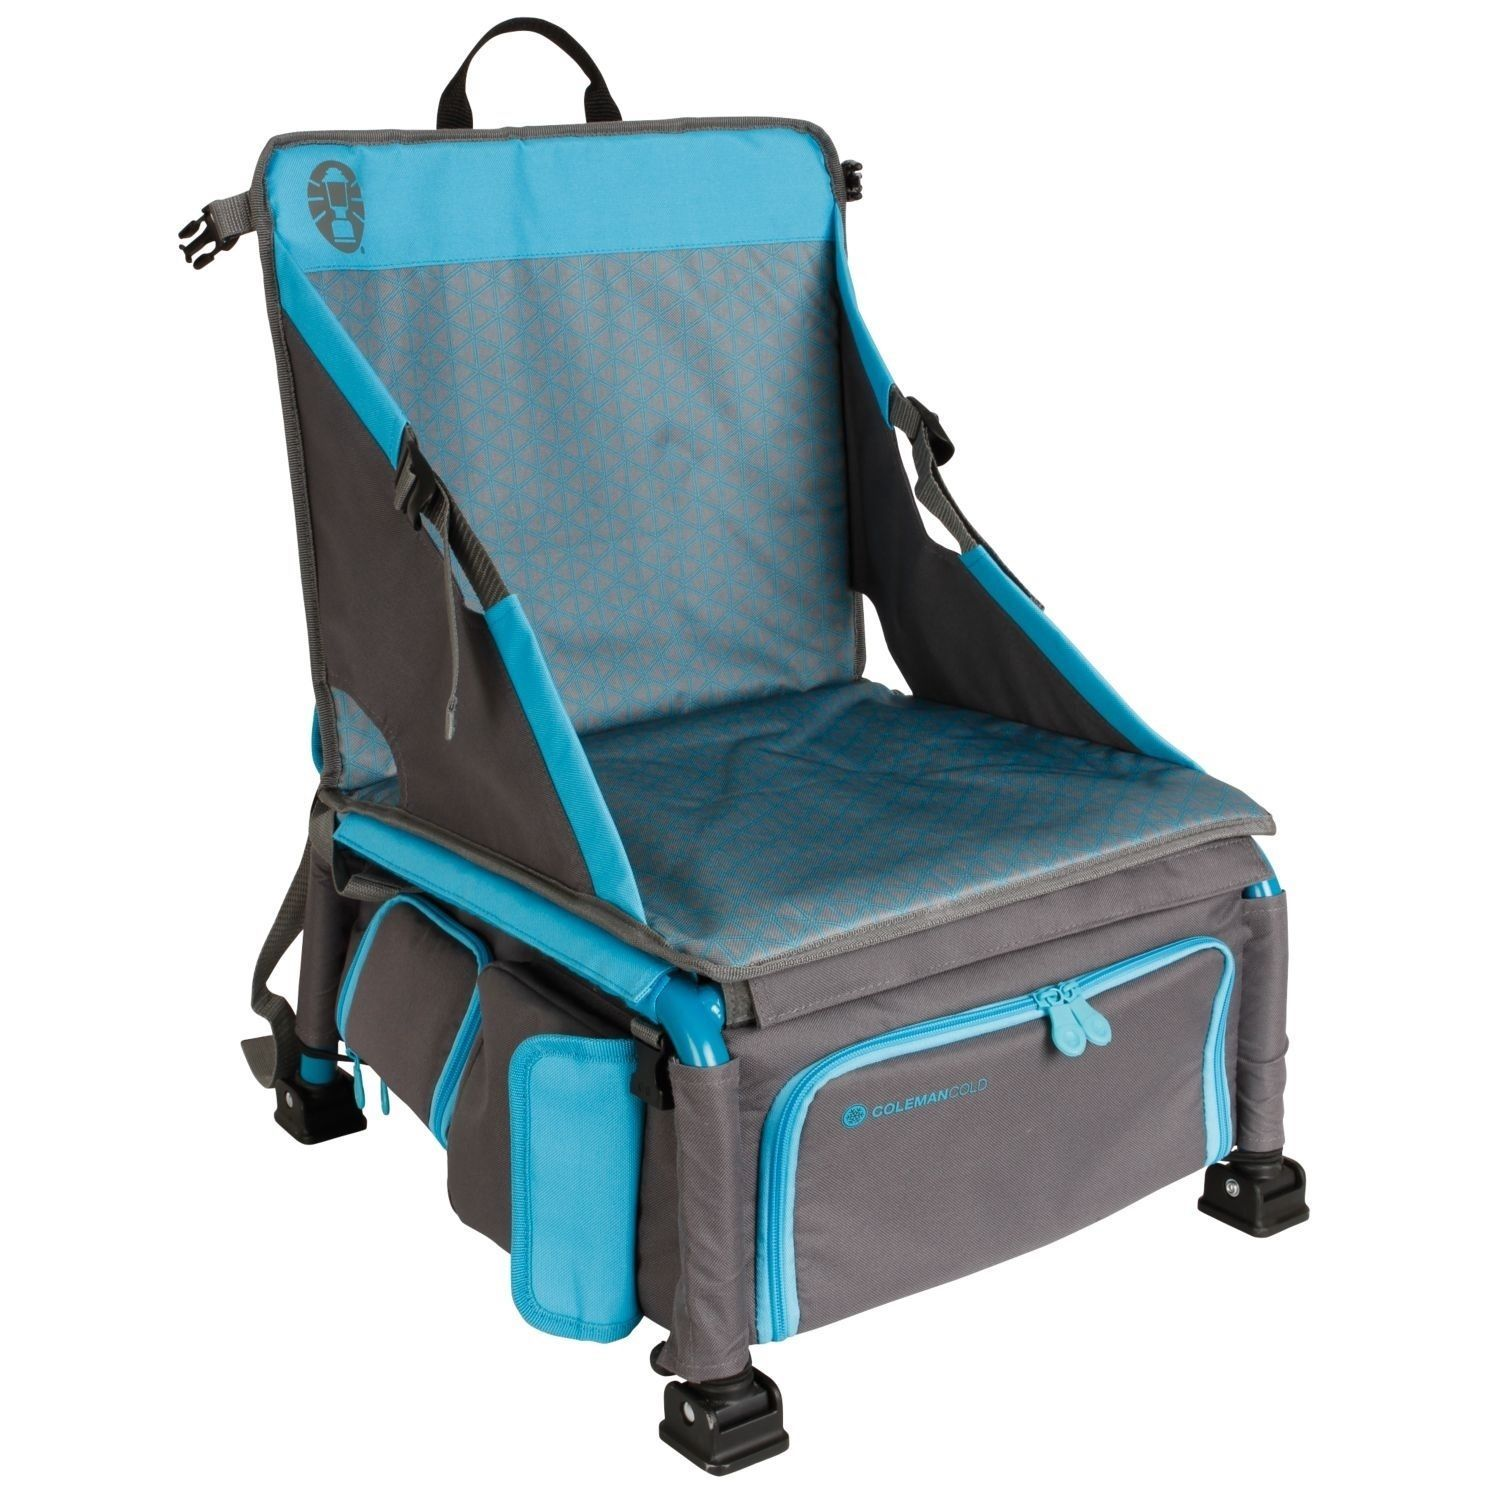 Perfect for camping in Utah, this Coolerpack chair is sure to be ...